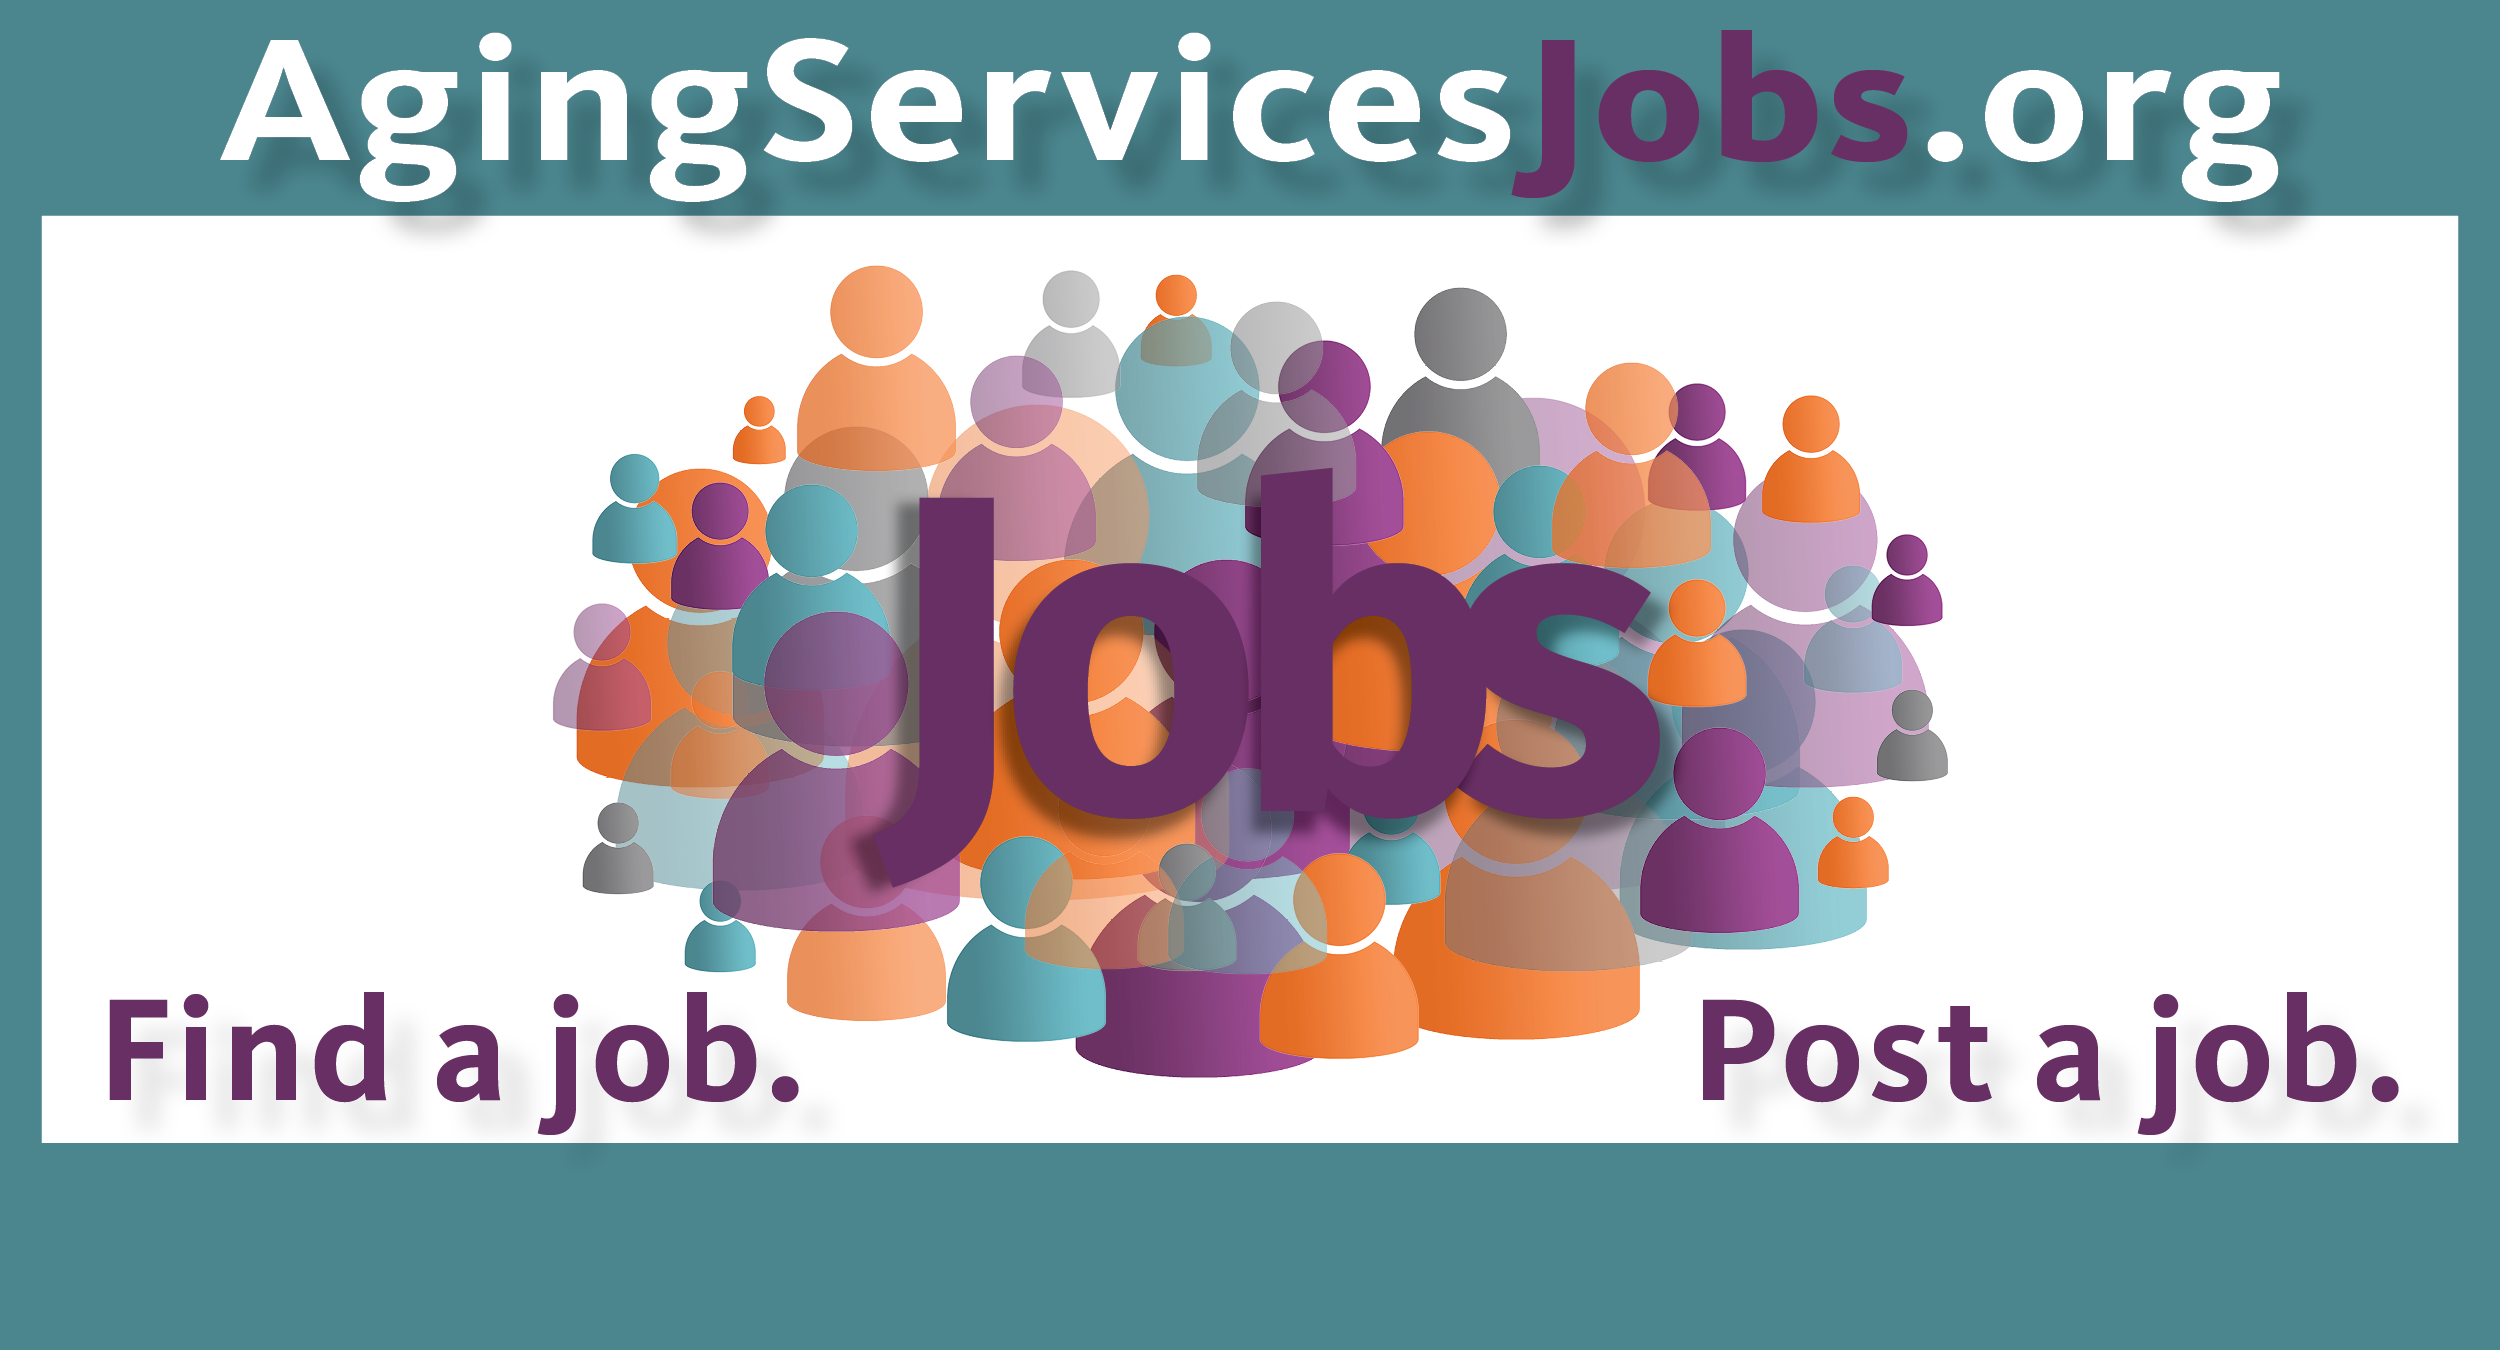 Jobs clipart job requirement. Agingservicesjobs org leadingage minnesota